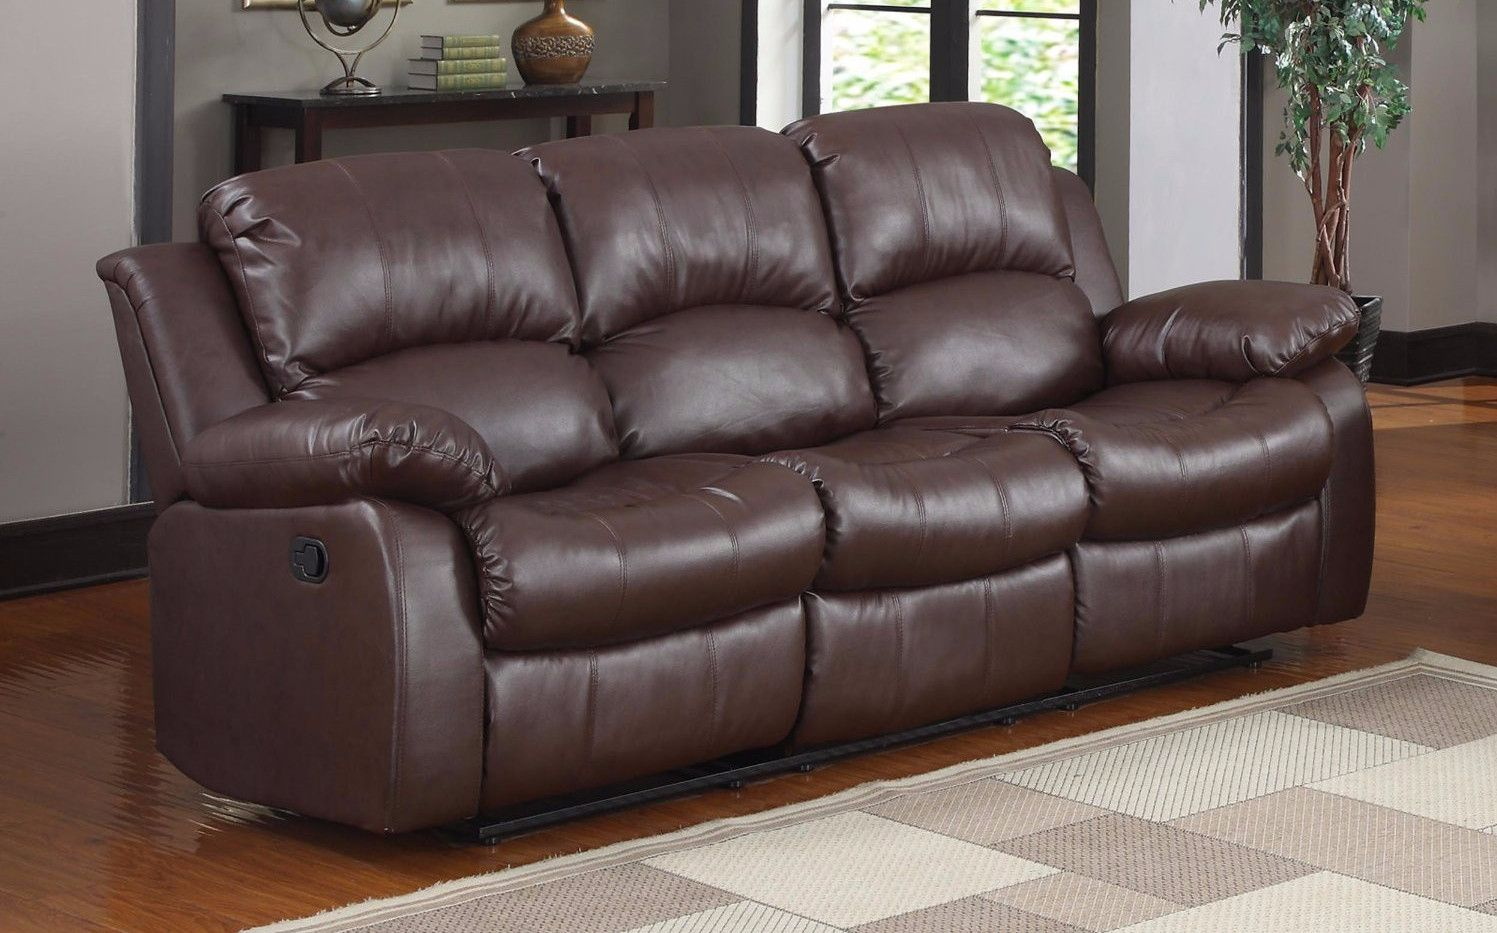 Overstuffed Leather Chair And Ottoman Overstuffed Sofa And Loveseat Review Home Co